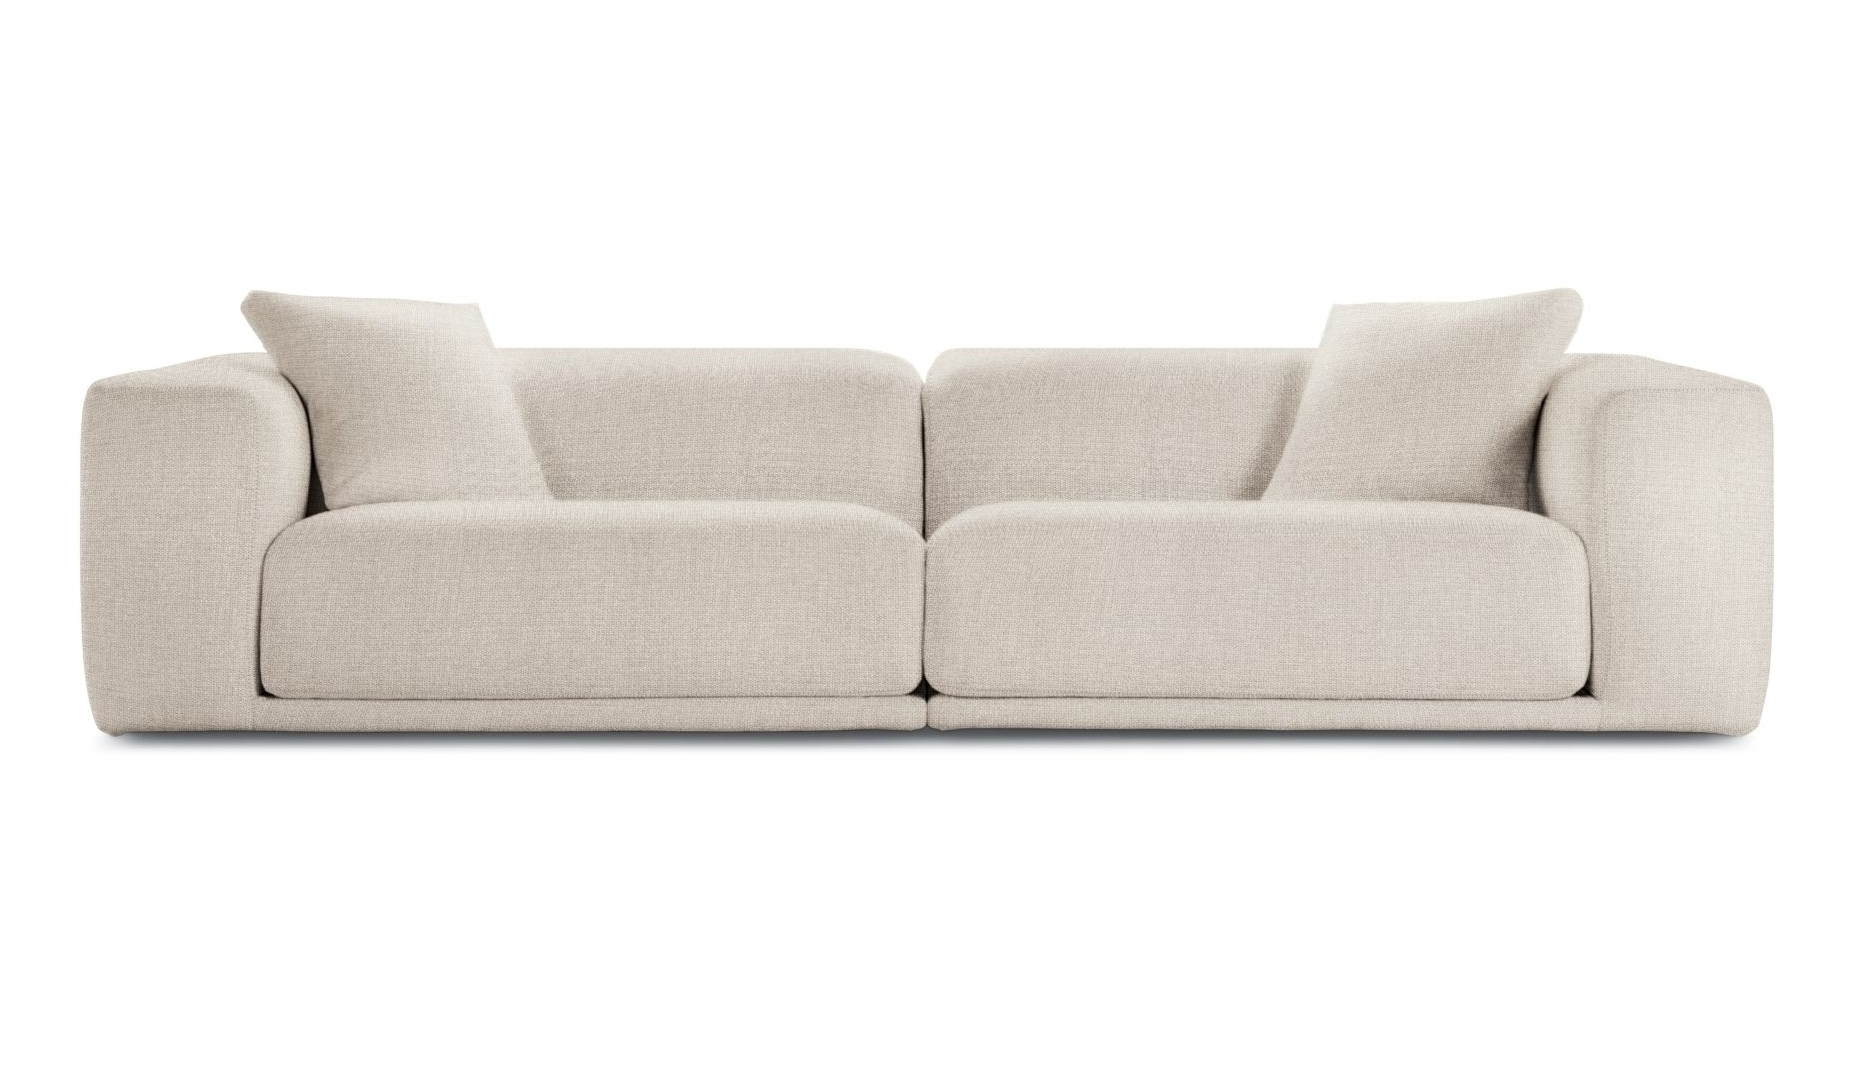 Design Within Reach | Kelston Sofa ($6990) - This 115